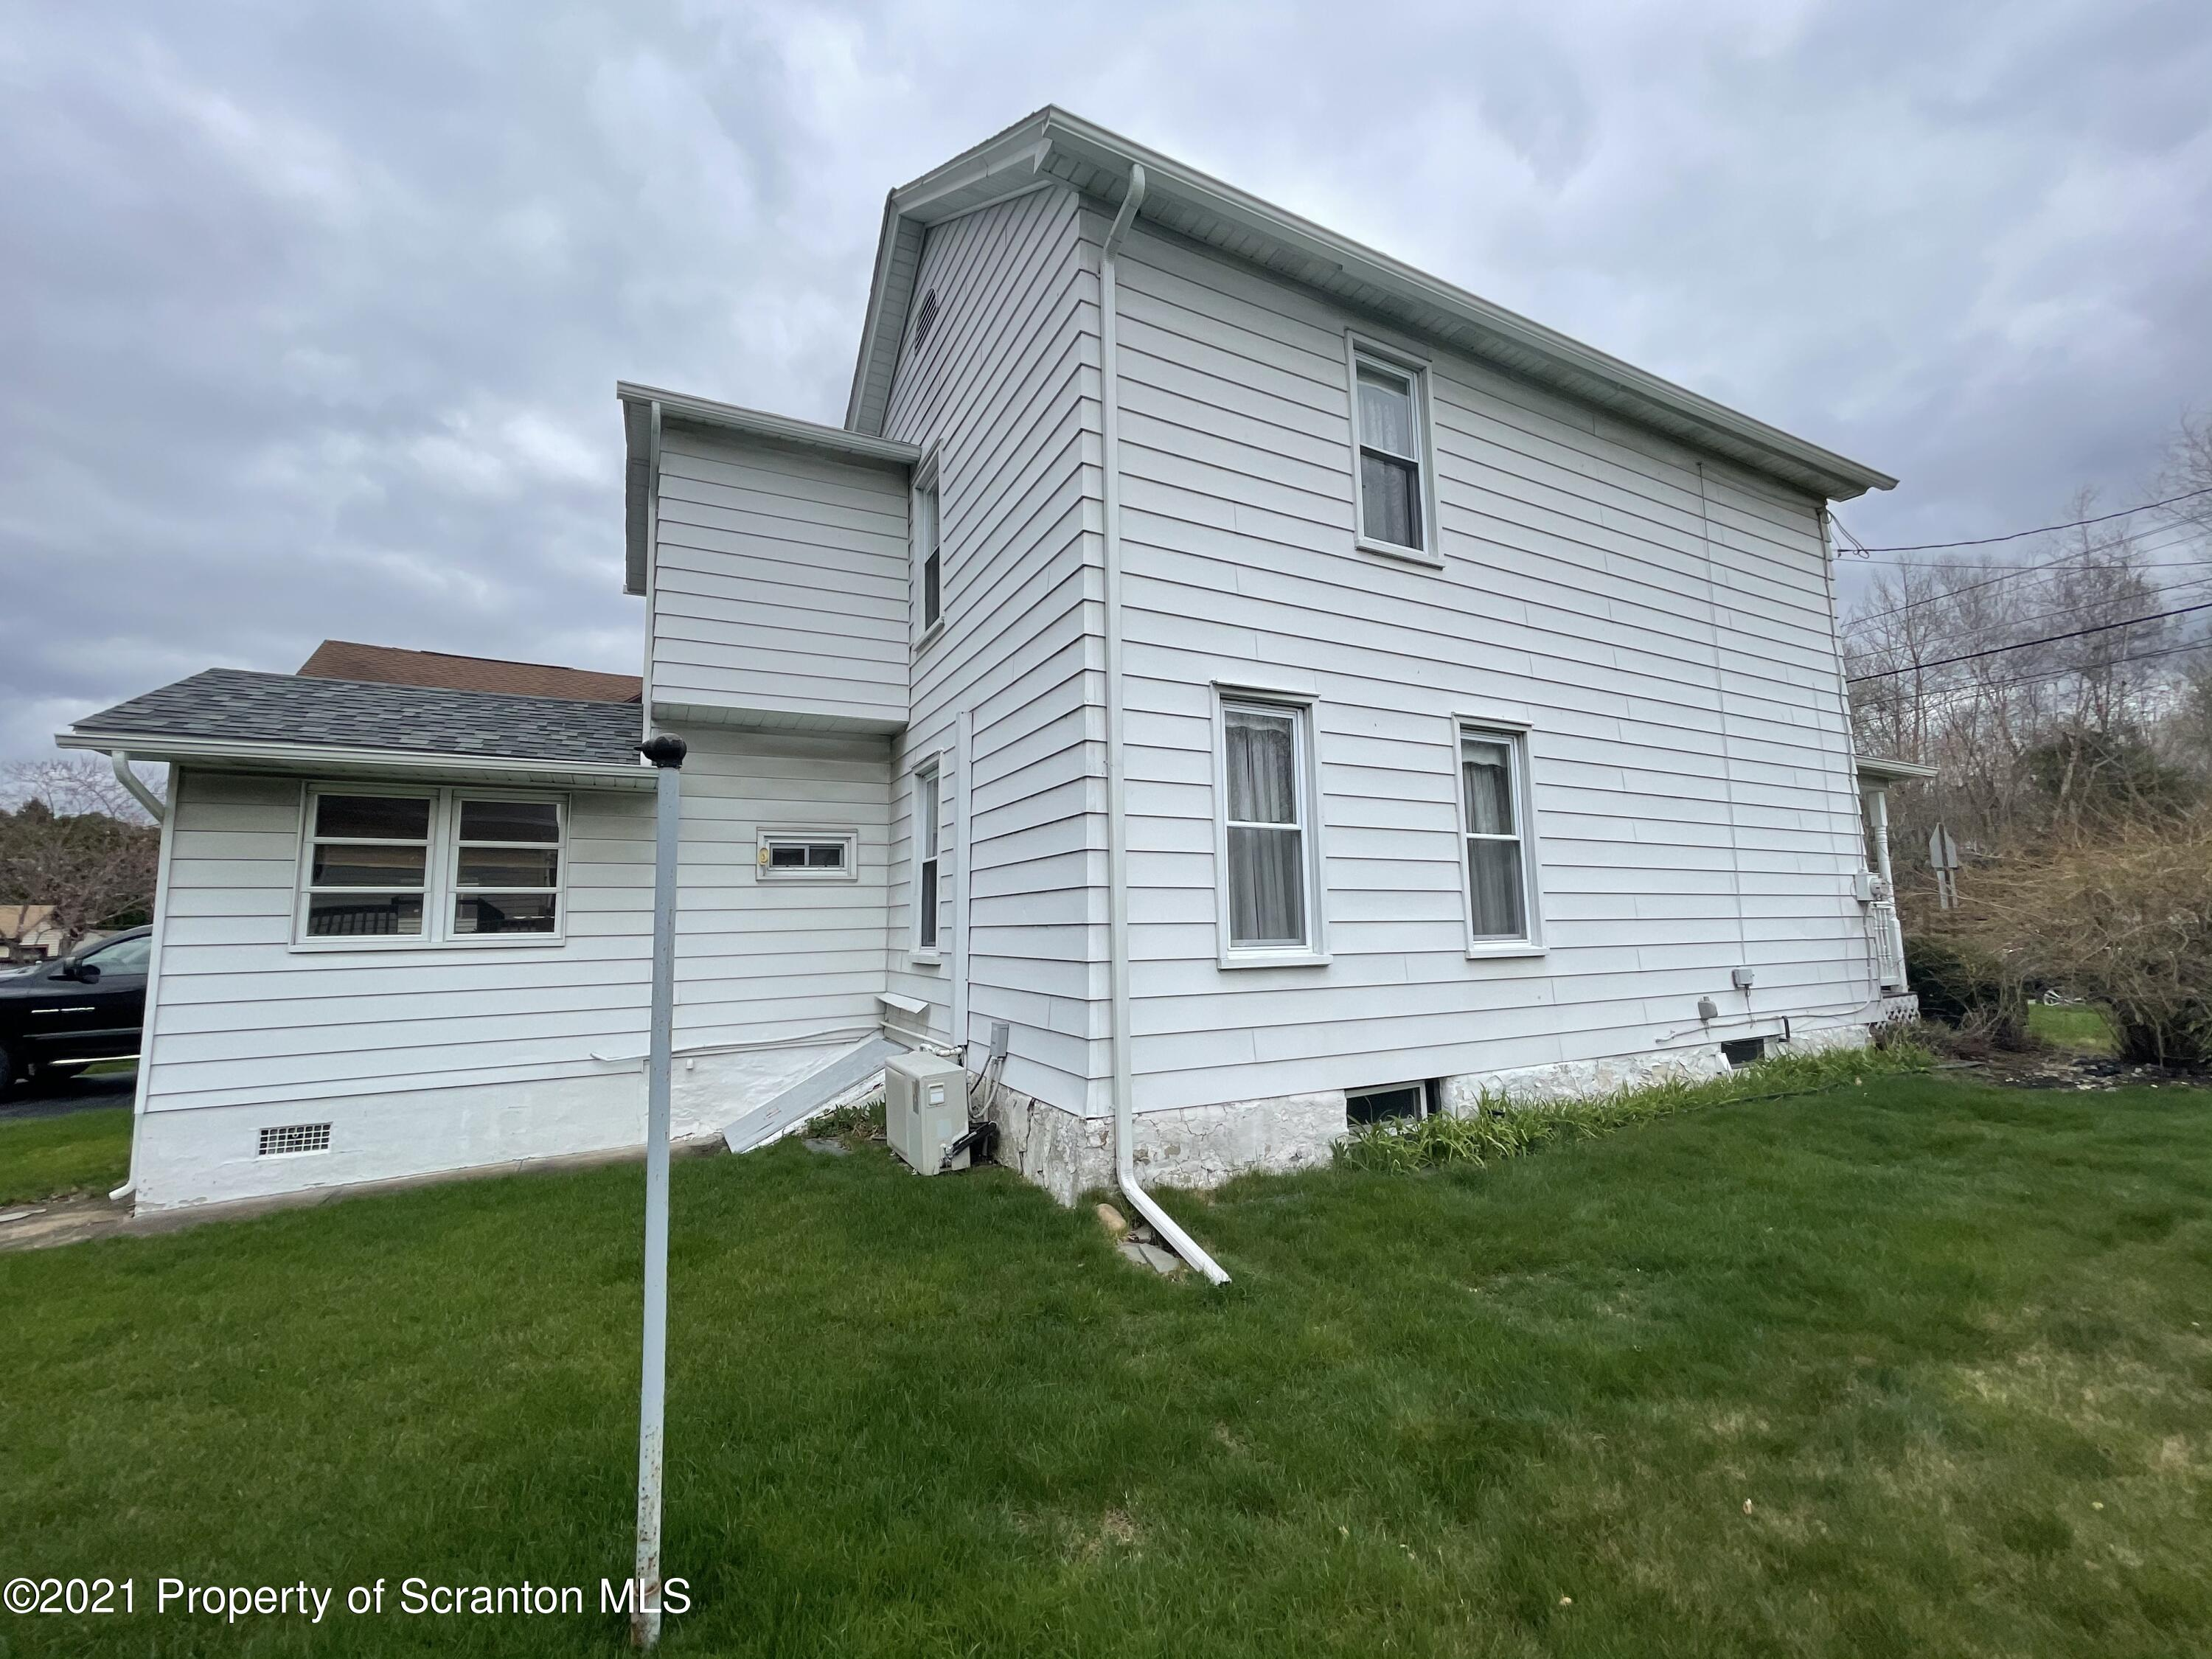 1017 Lackawanna Ave, Mayfield, Pennsylvania 18433, 3 Bedrooms Bedrooms, 7 Rooms Rooms,2 BathroomsBathrooms,Single Family,For Sale,Lackawanna,21-1343